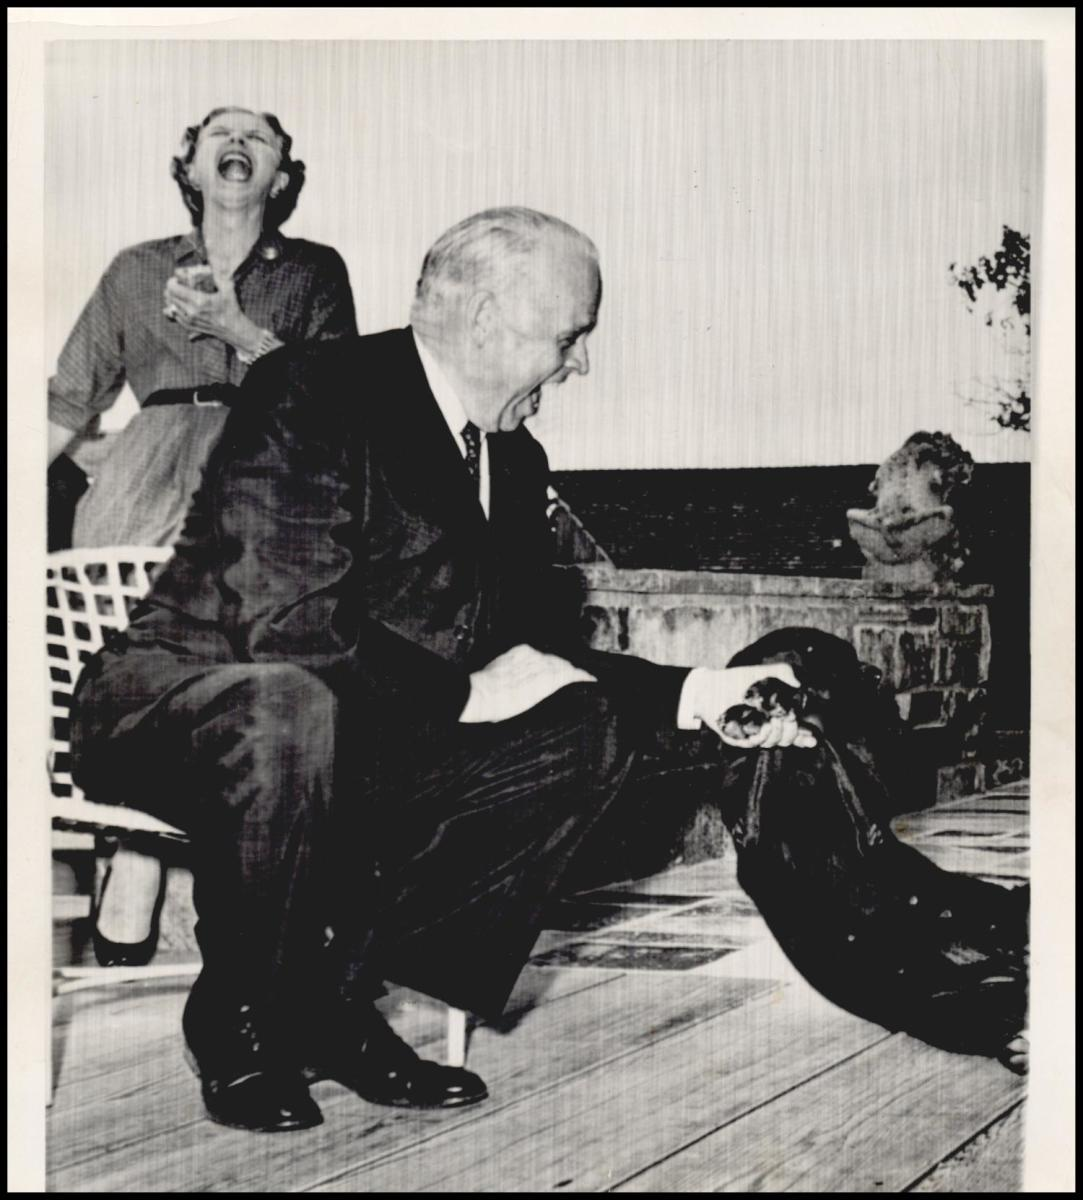 Sen Kerr was trying to get the dog to perform like he hopes it will when President Kennedy visits the Kerr home near Poteau.